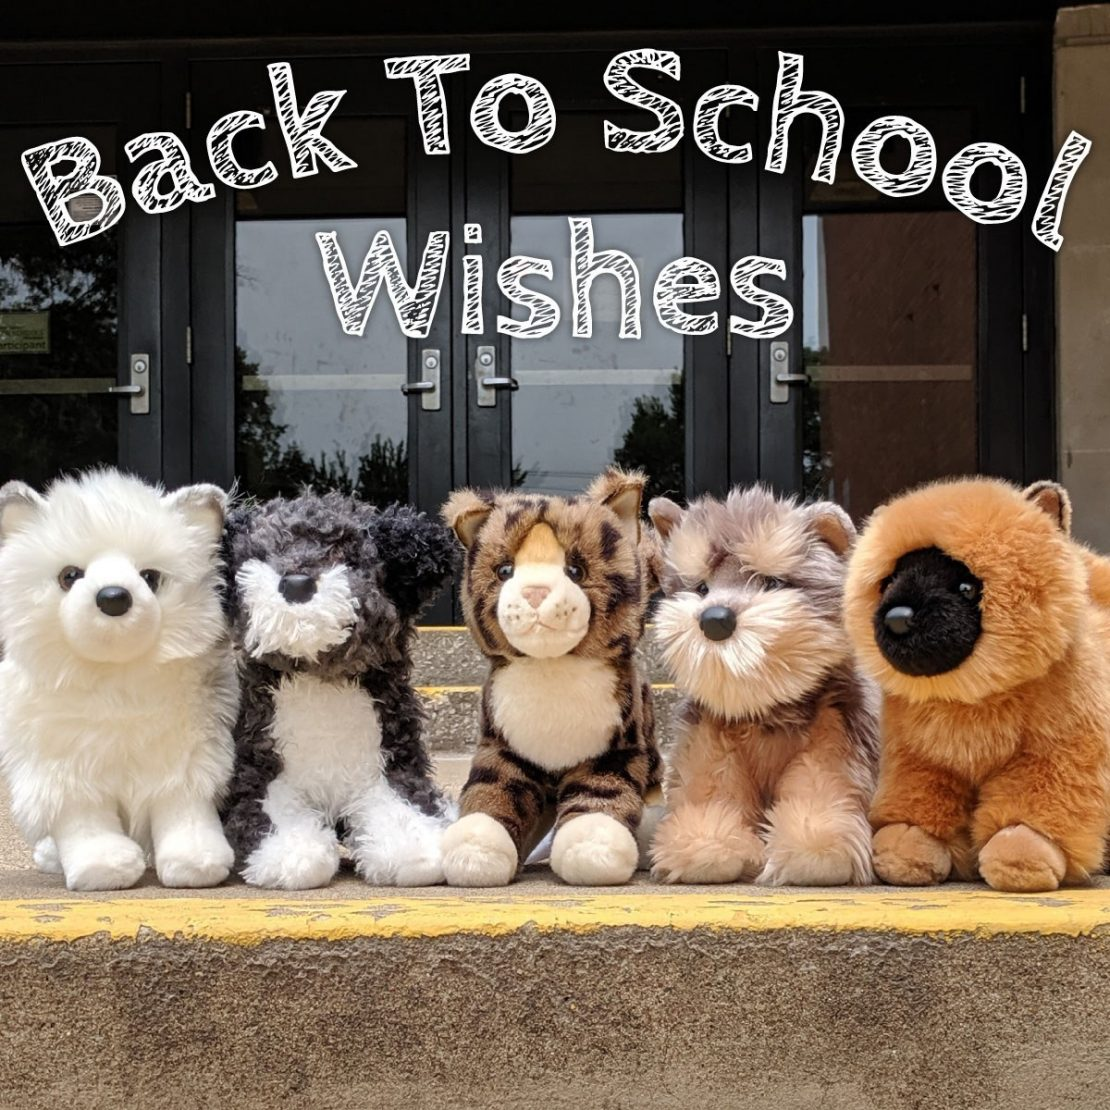 Happy Up Wishes for the New School Year